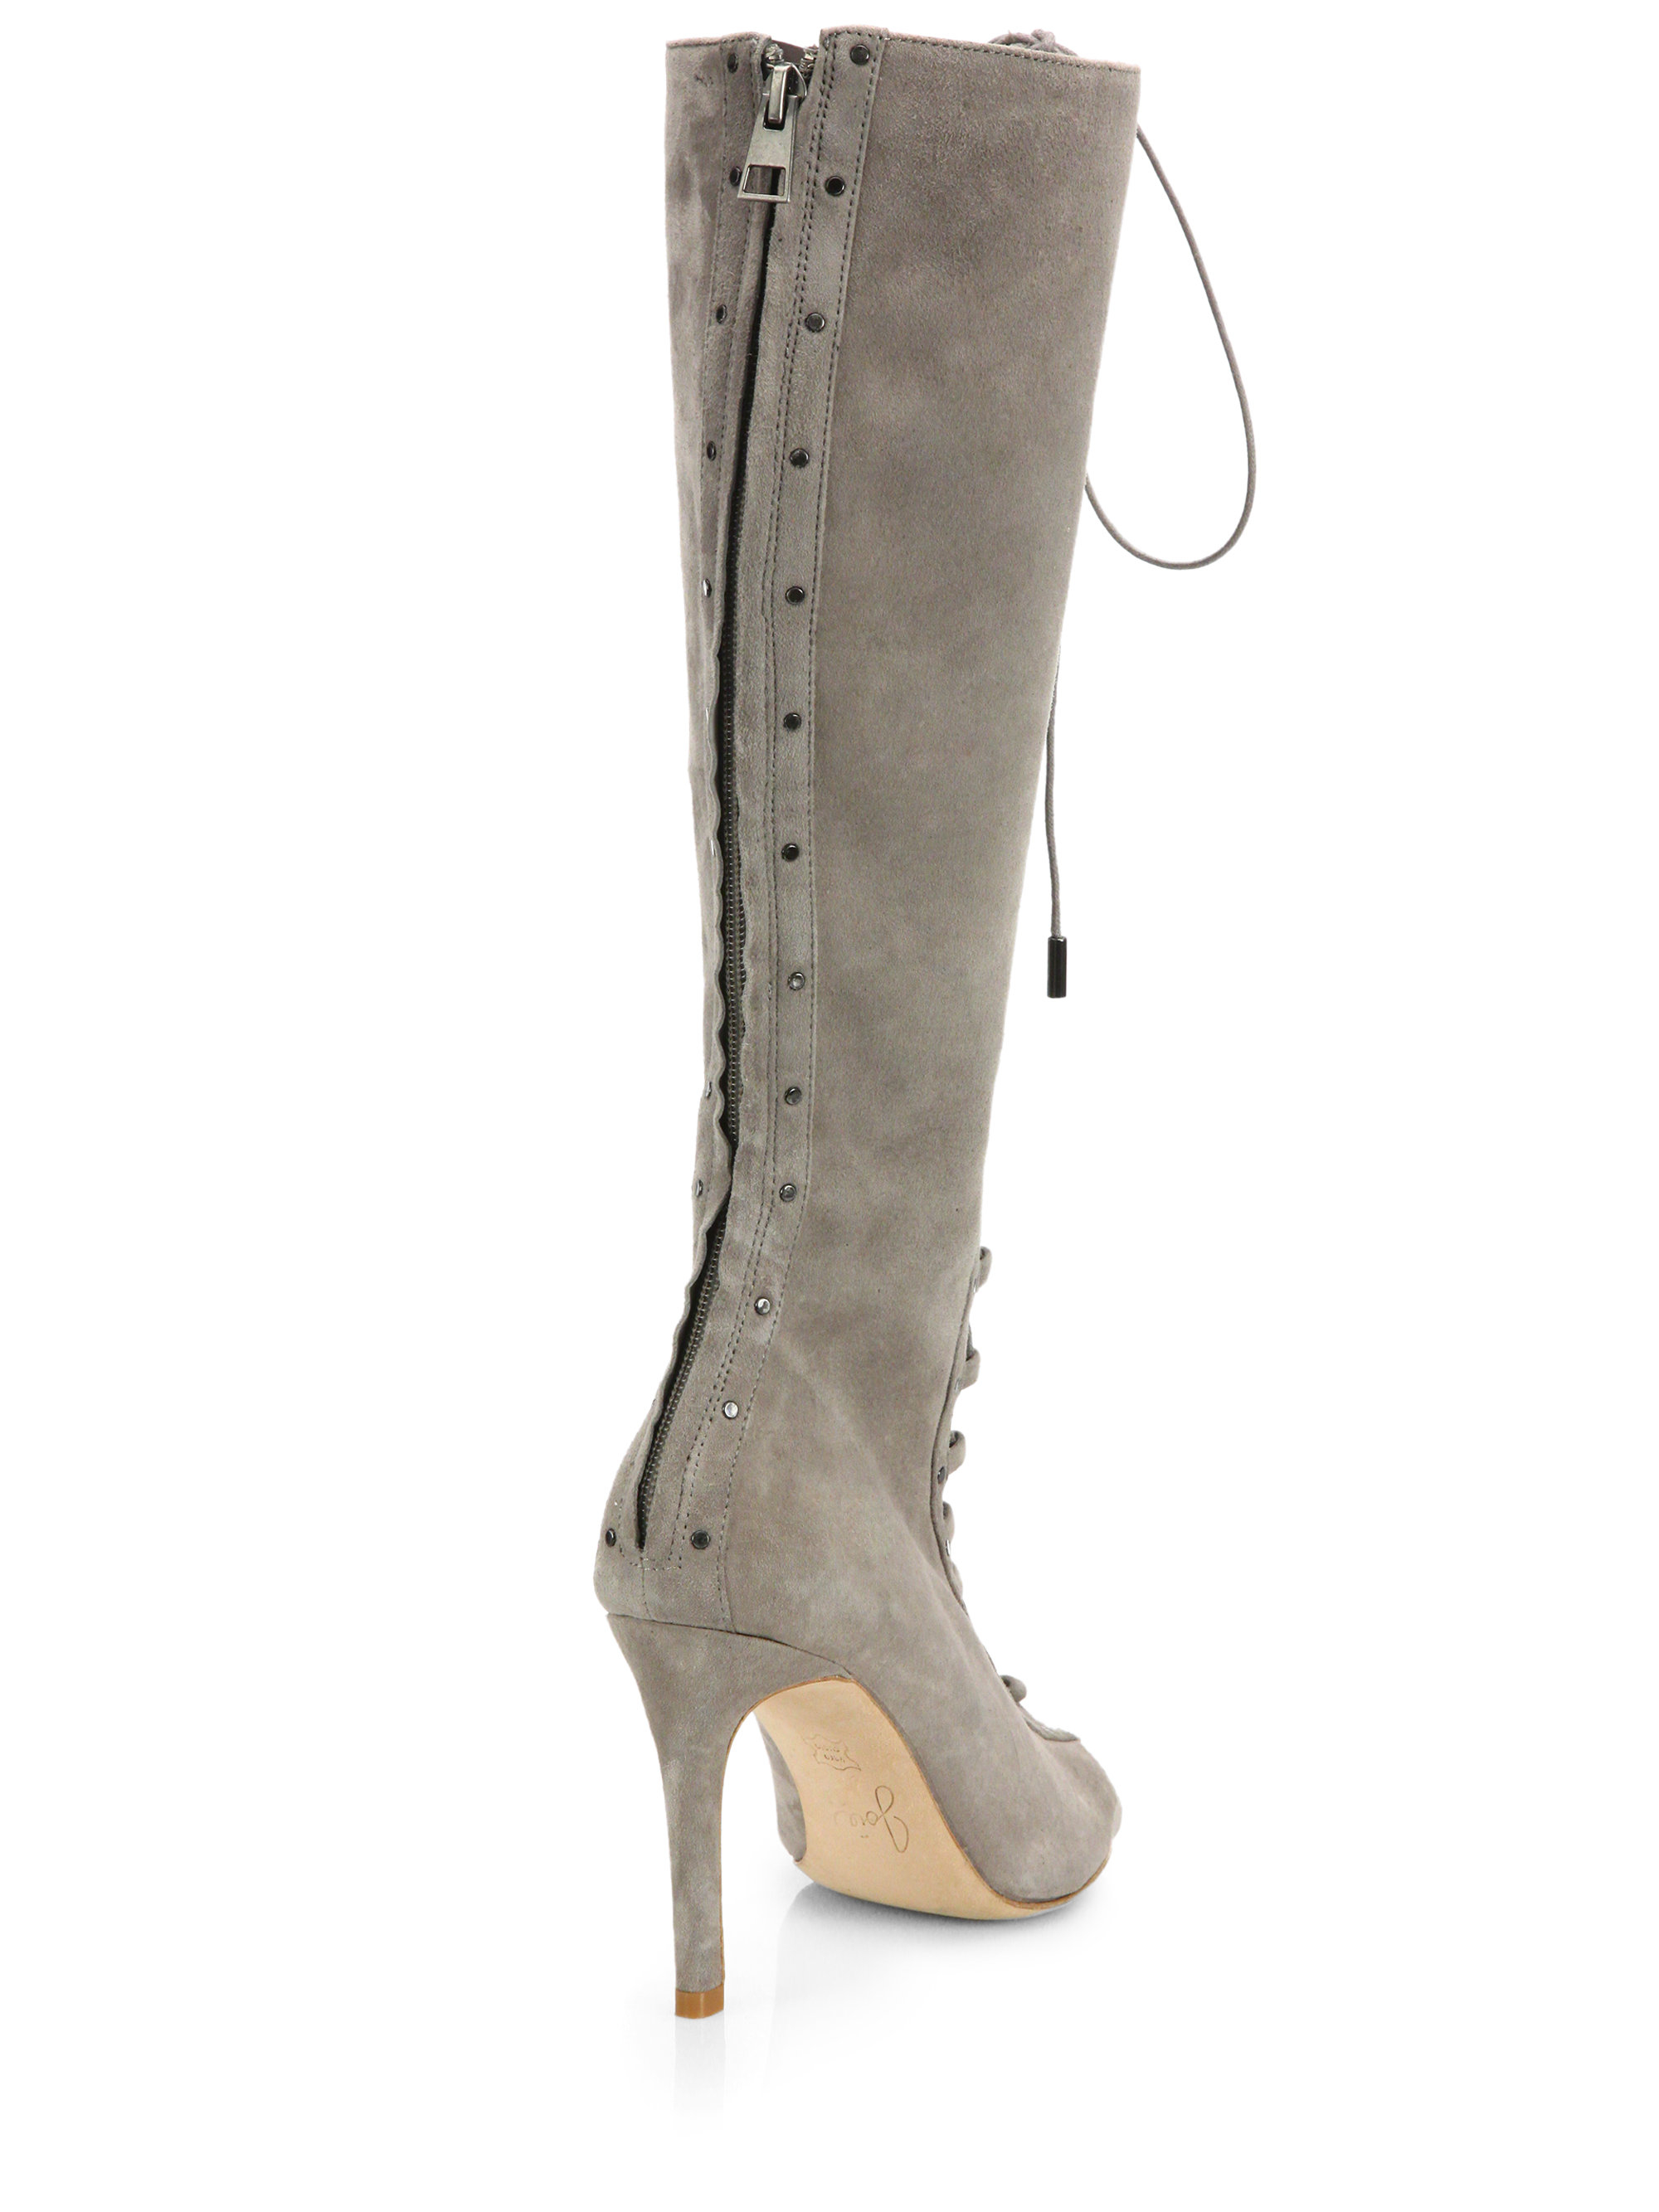 Joie Aubrey Suede Lace Up Peep Toe Knee Boots In Gray Lyst